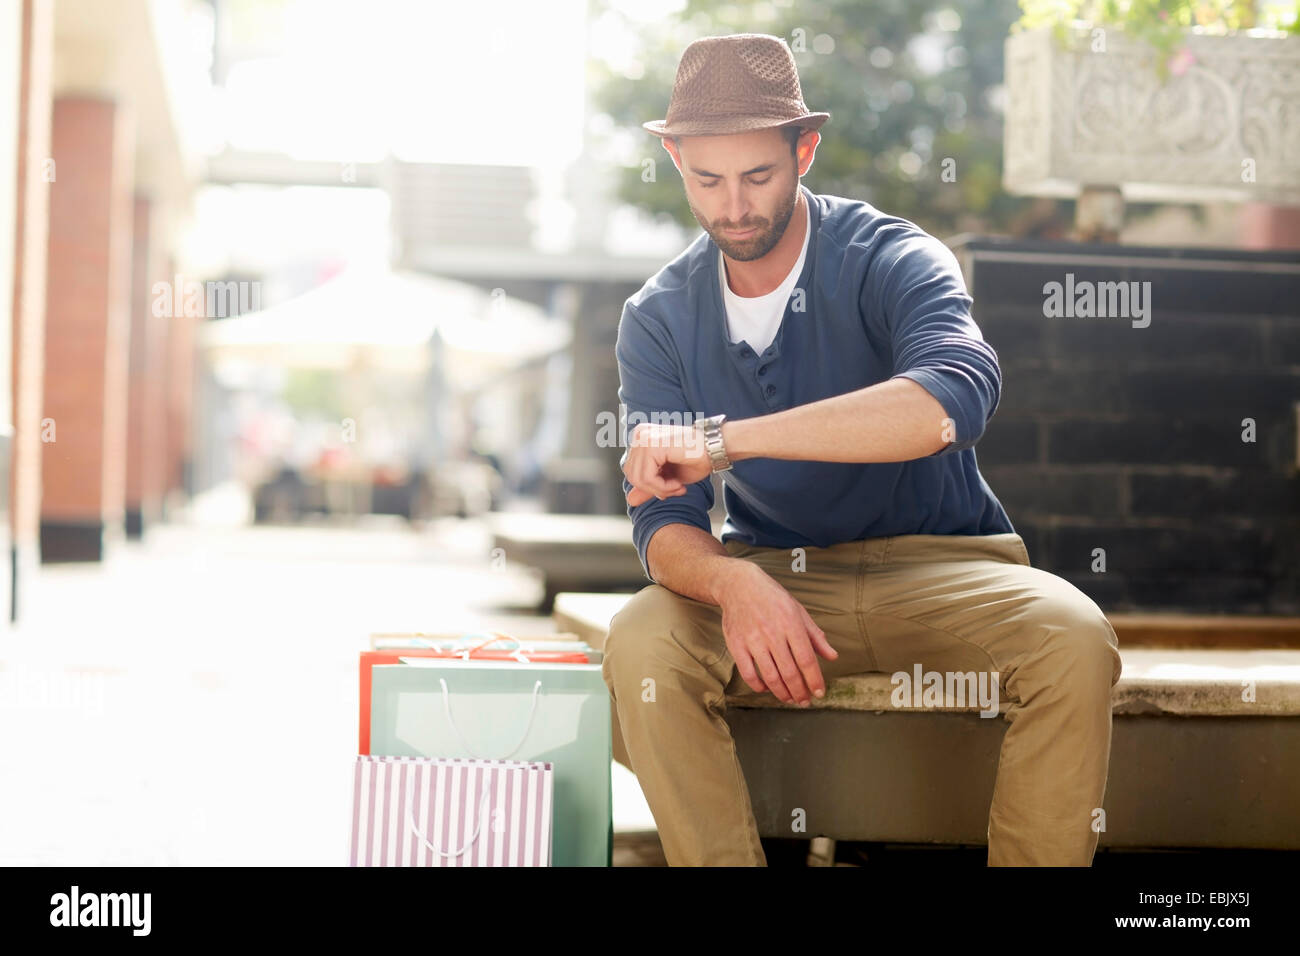 Mid adult man sitting on seat, looking at watch, shopping bags beside him - Stock Image